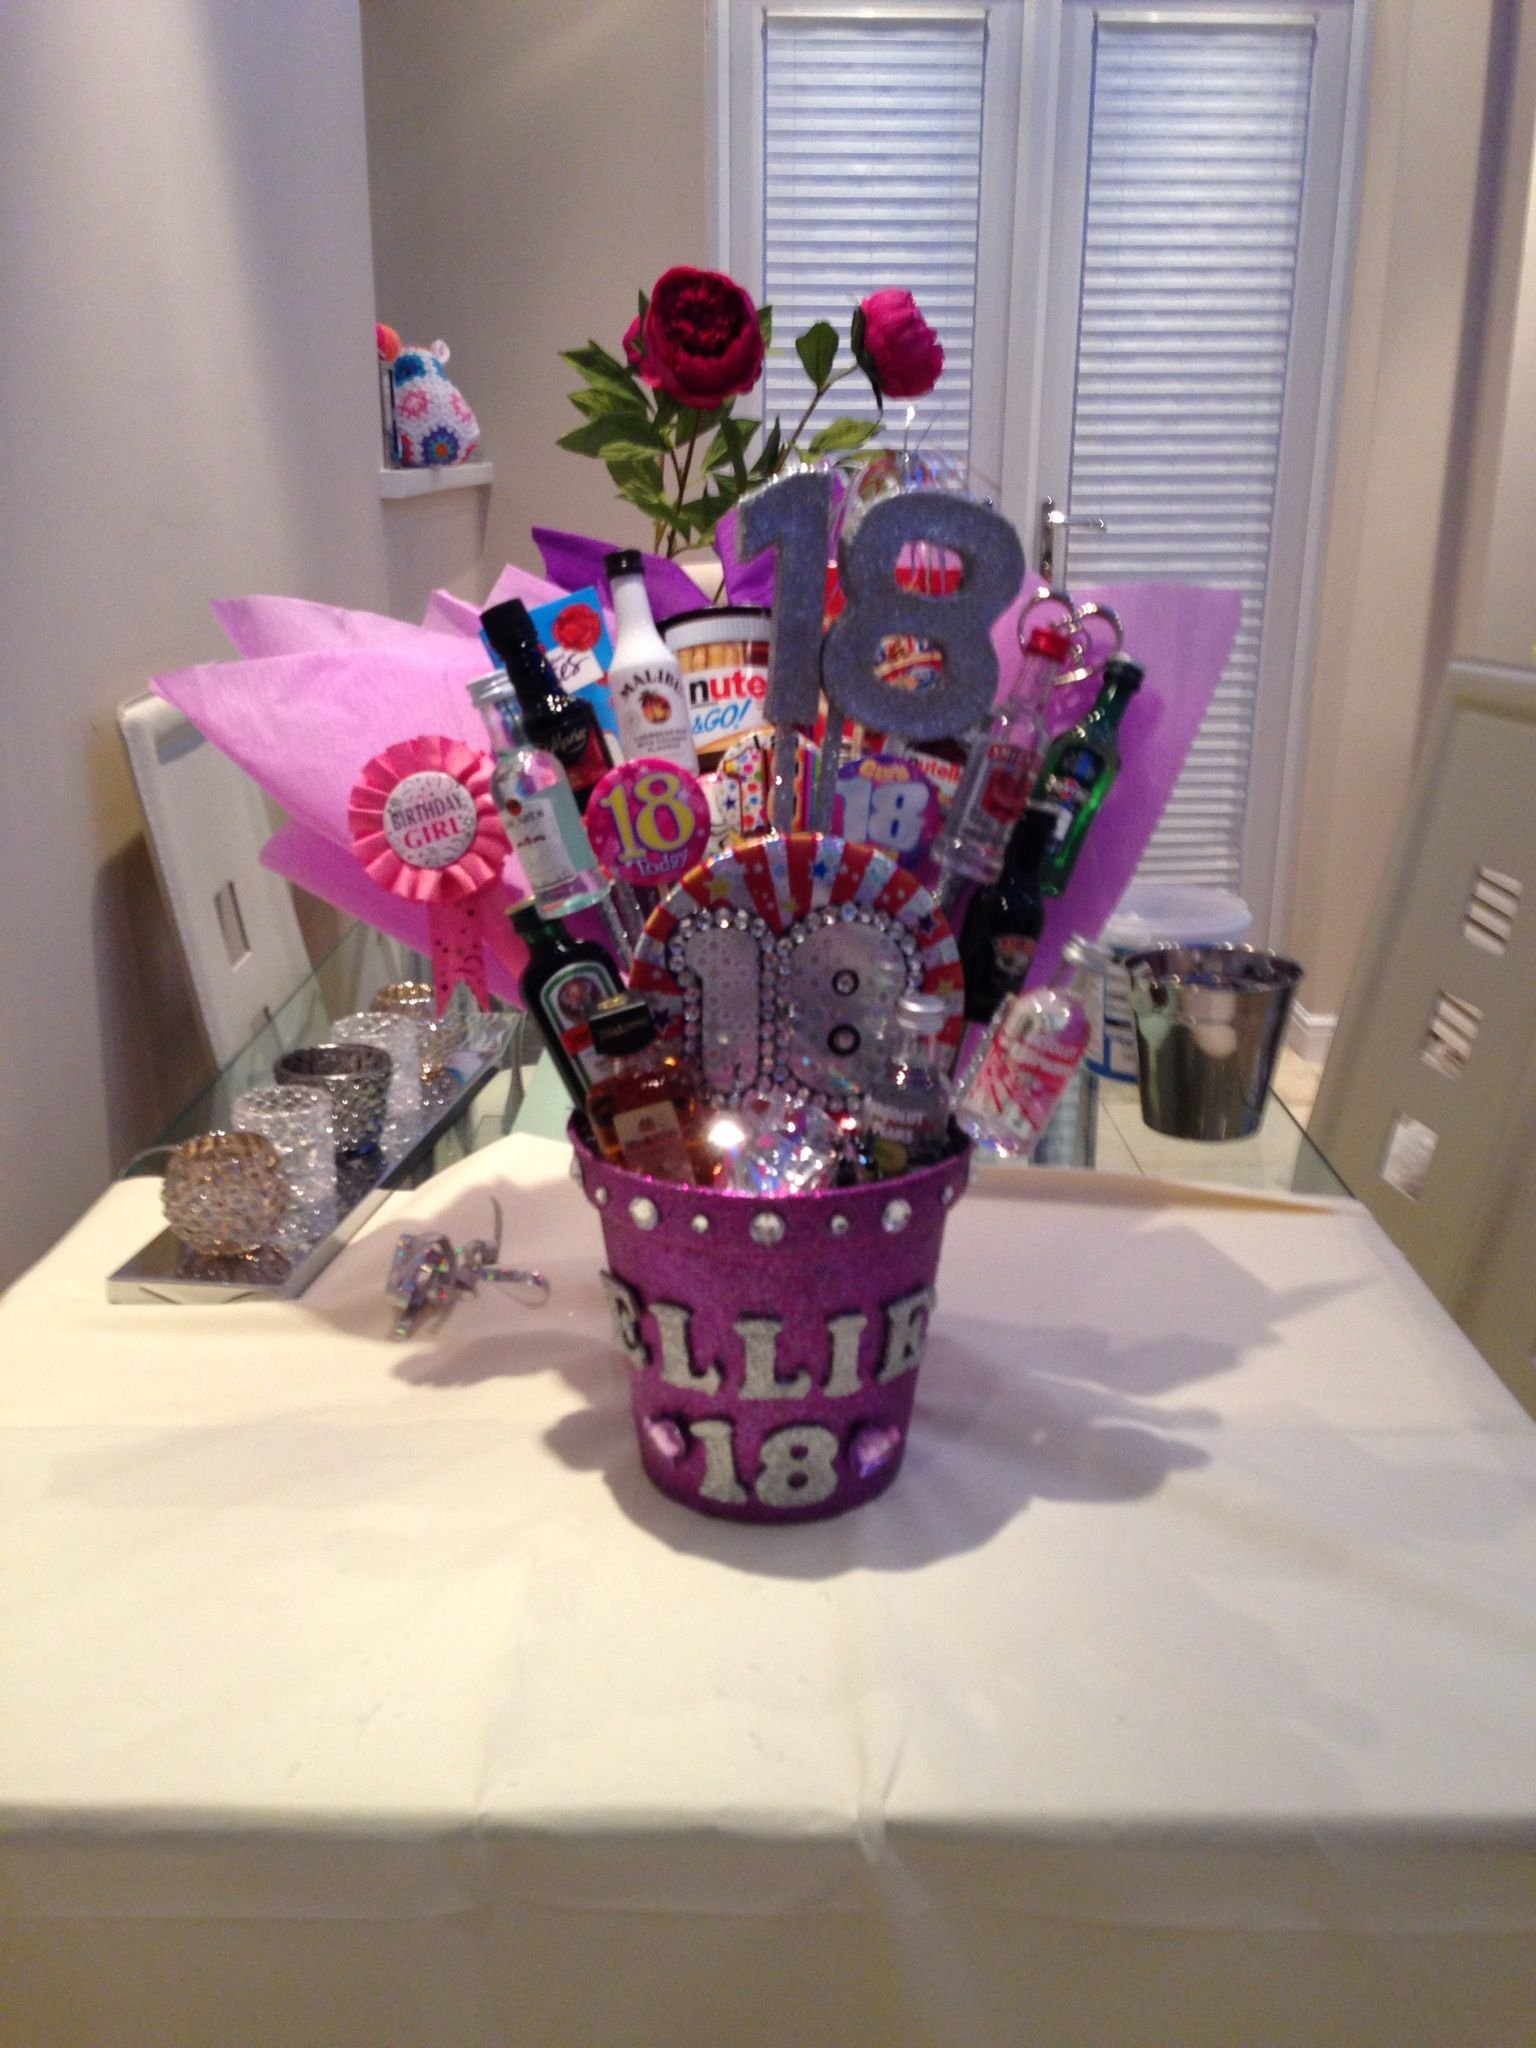 Some Creative Ideas For Planning An Th Birthday Party - Table decoration ideas for 18th birthday